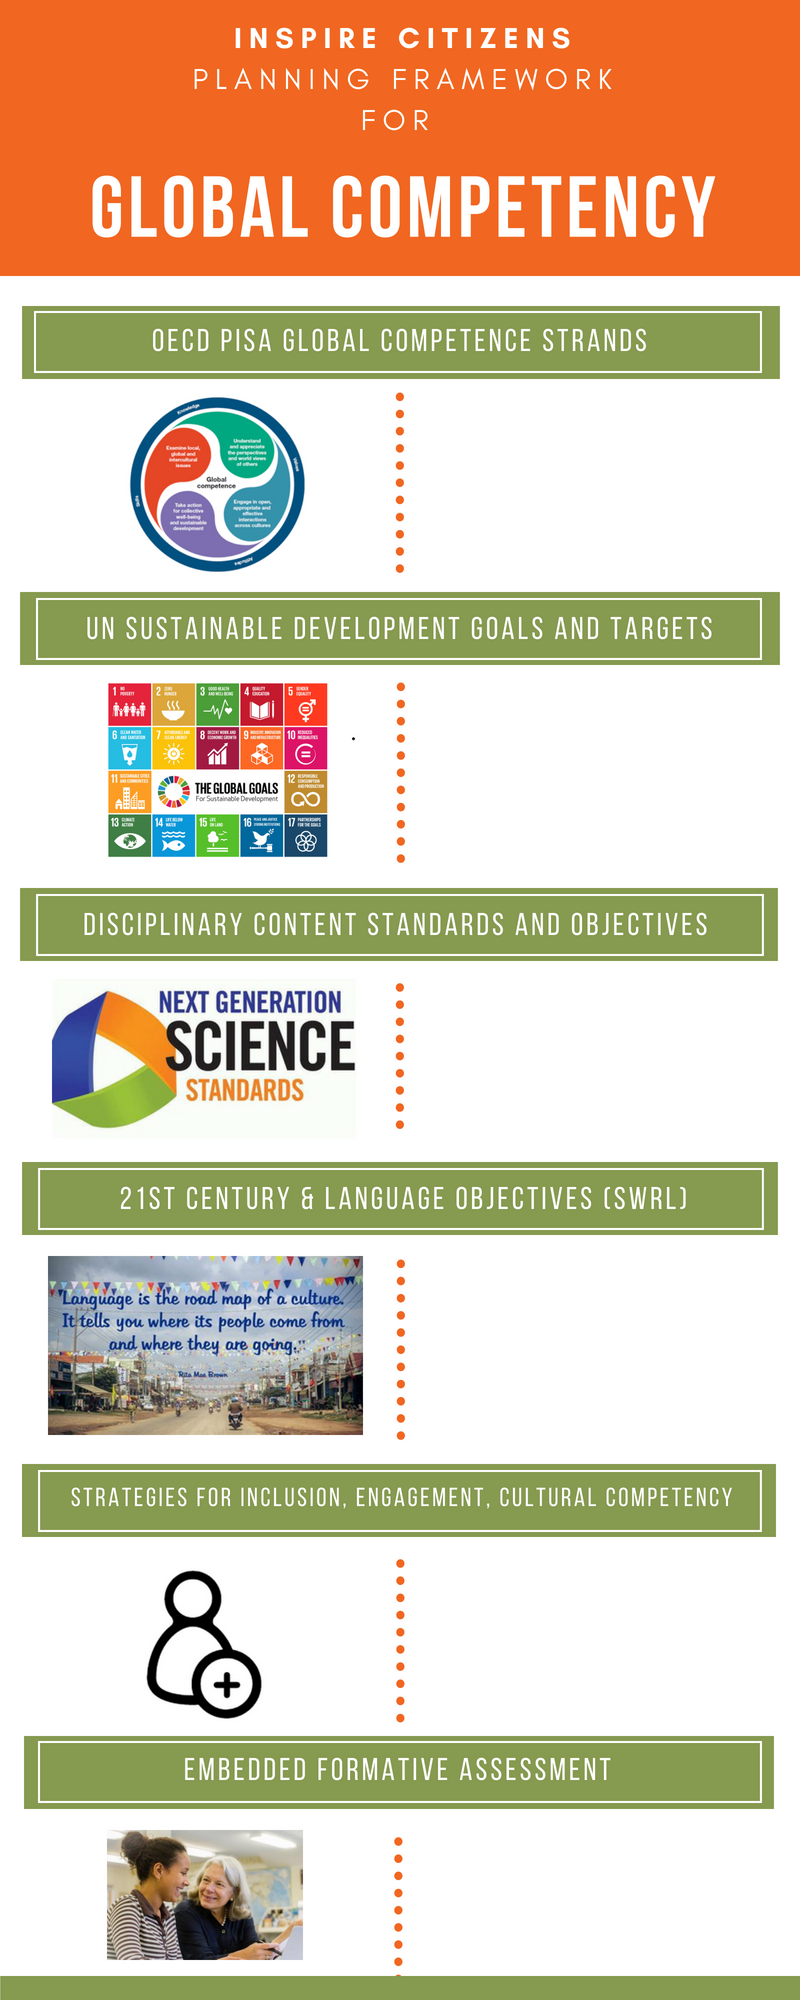 Copy of Inspire Citizens OECD PISA Global Competence Lesson Framework.png